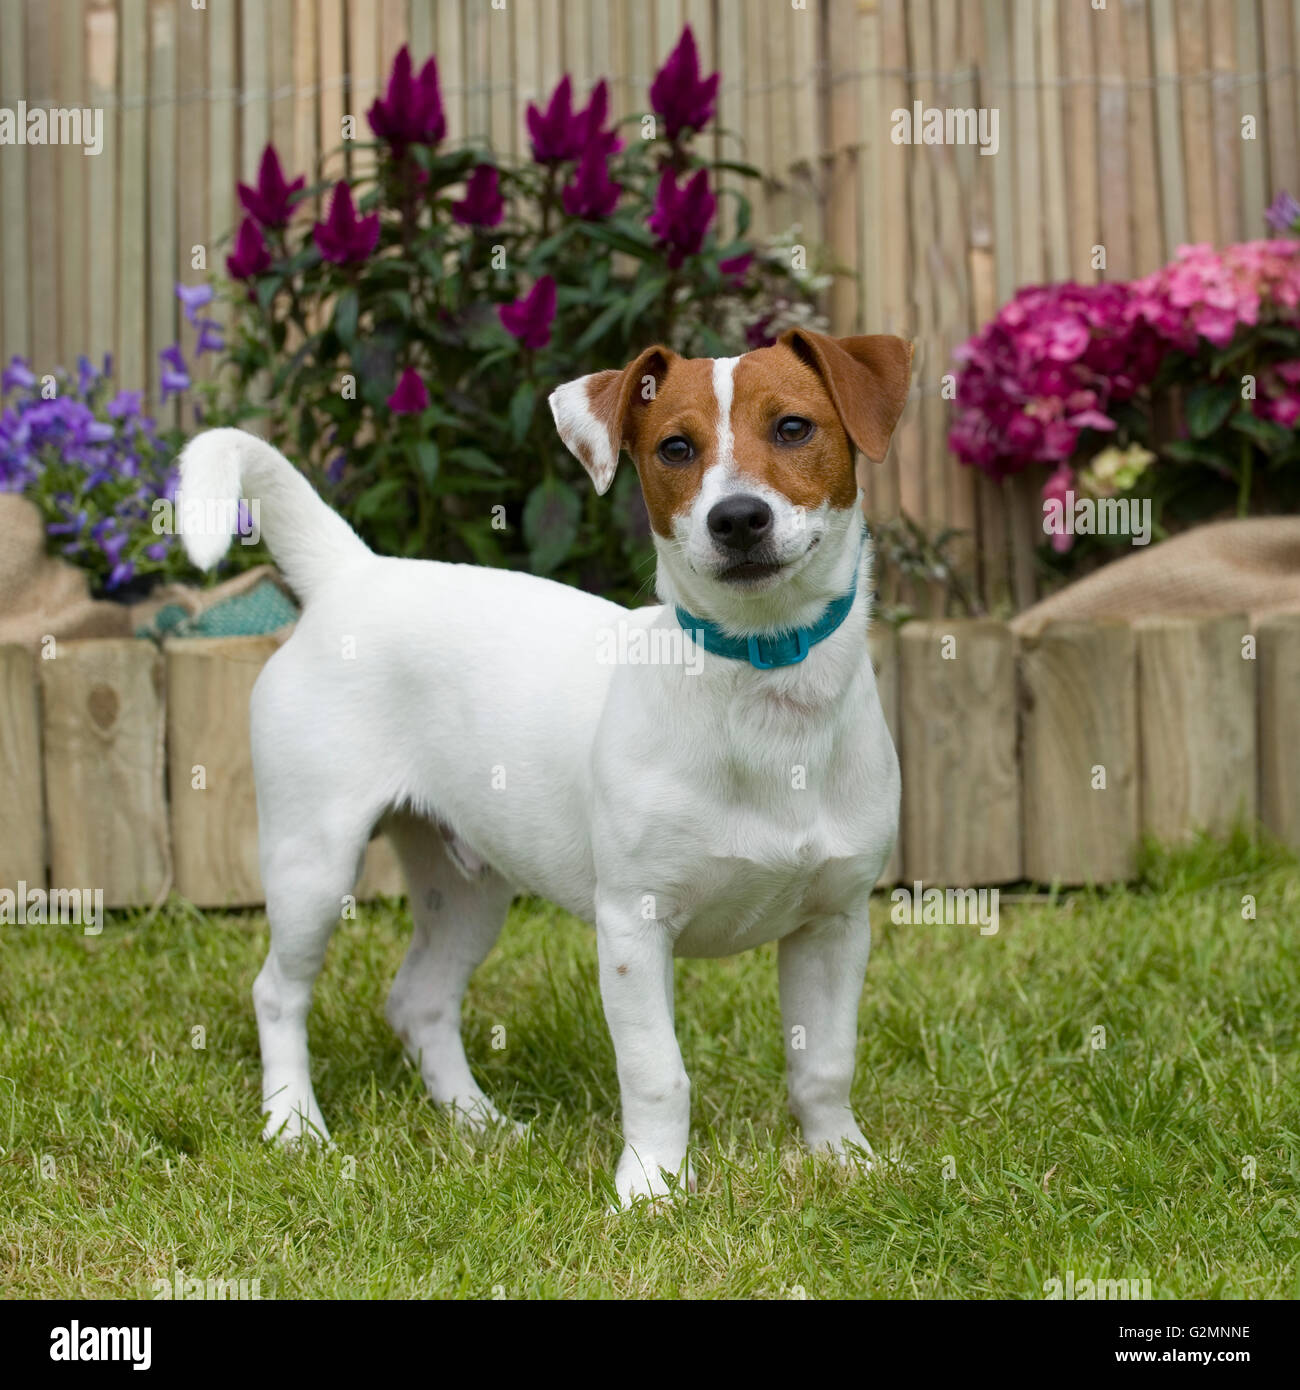 jack russell terrier - Stock Image